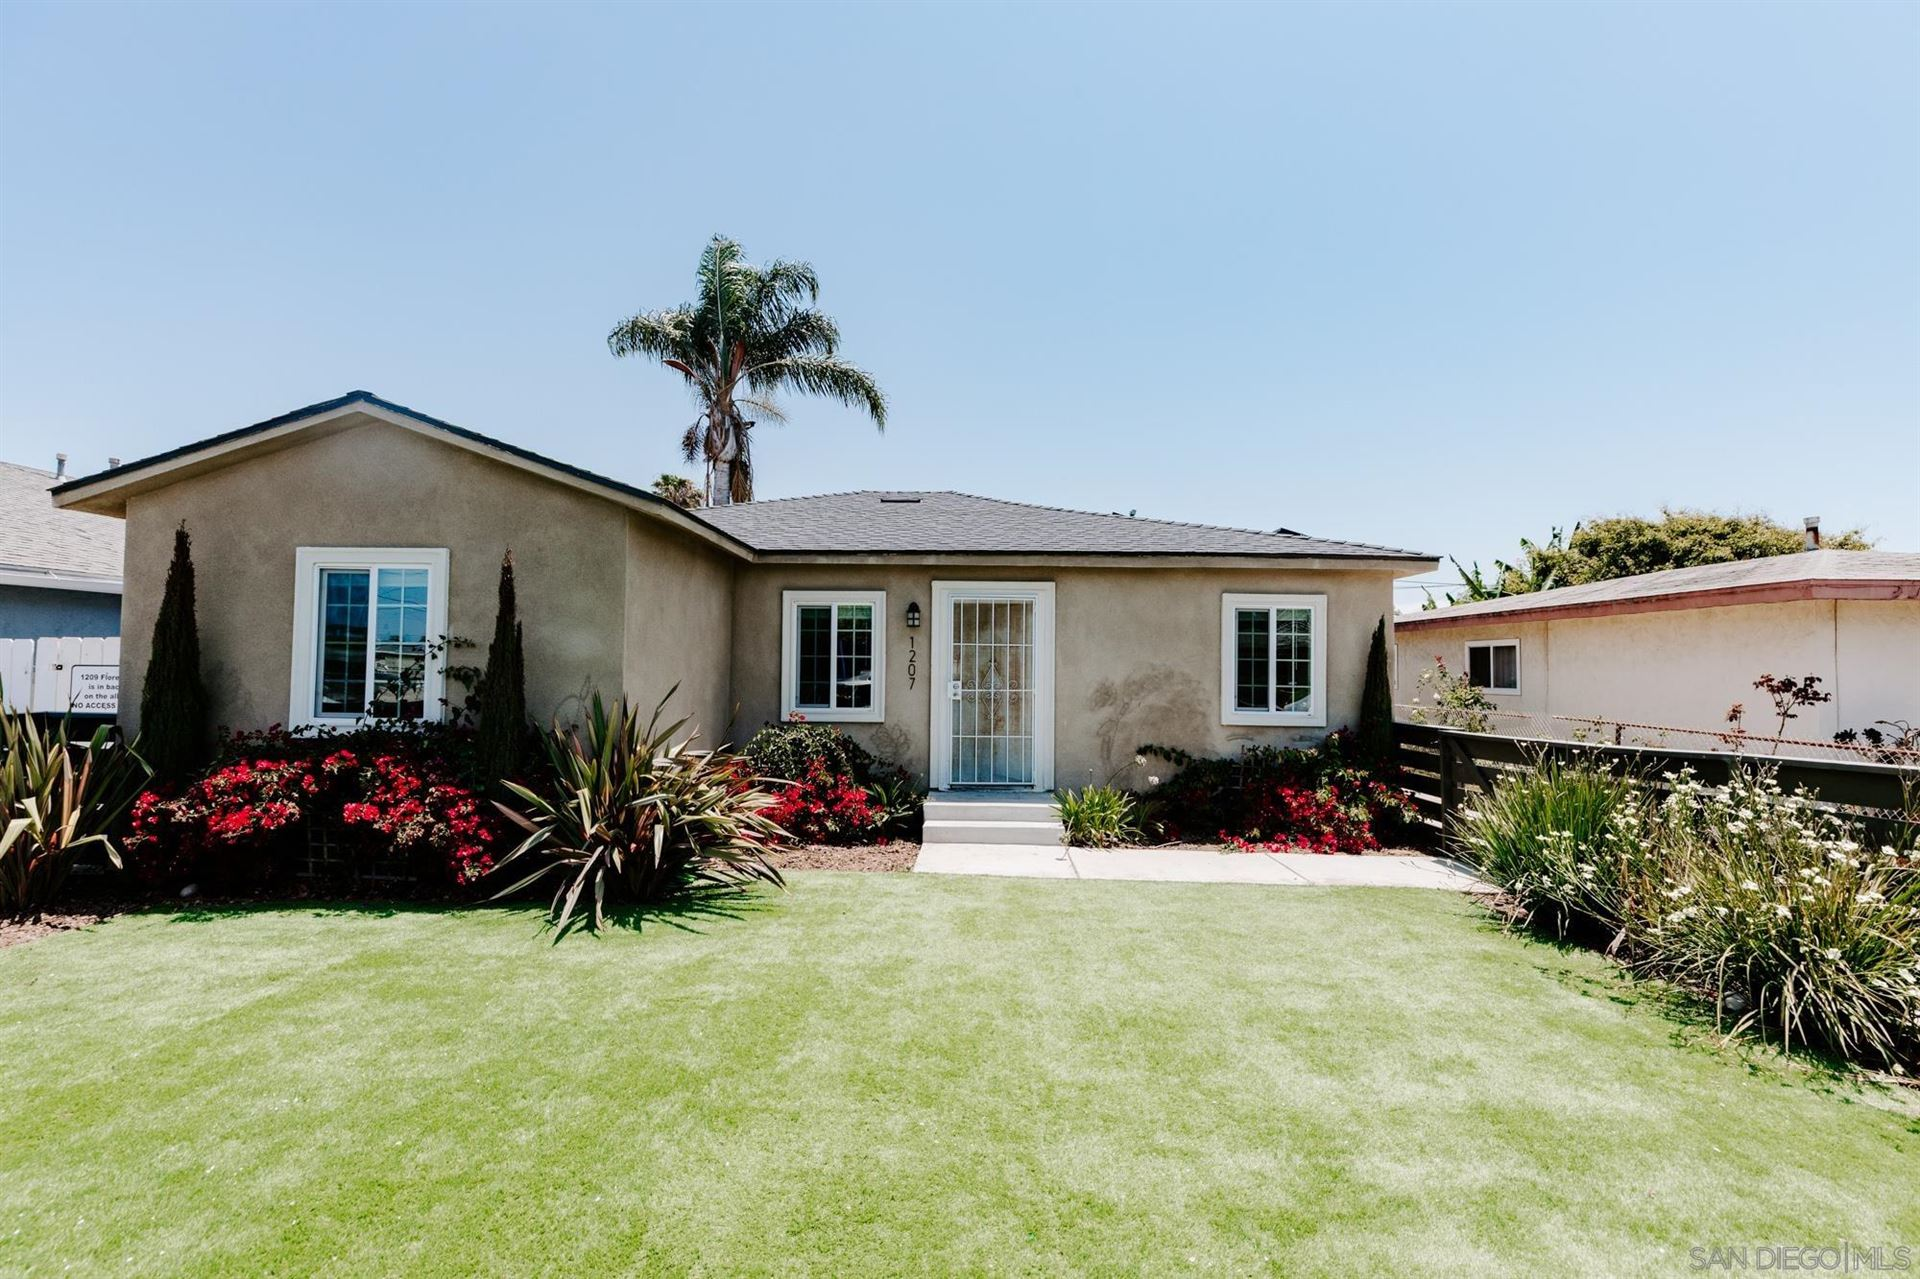 Photo of 1207 Florence St, Imperial Beach, CA 91932 (MLS # 210018592)